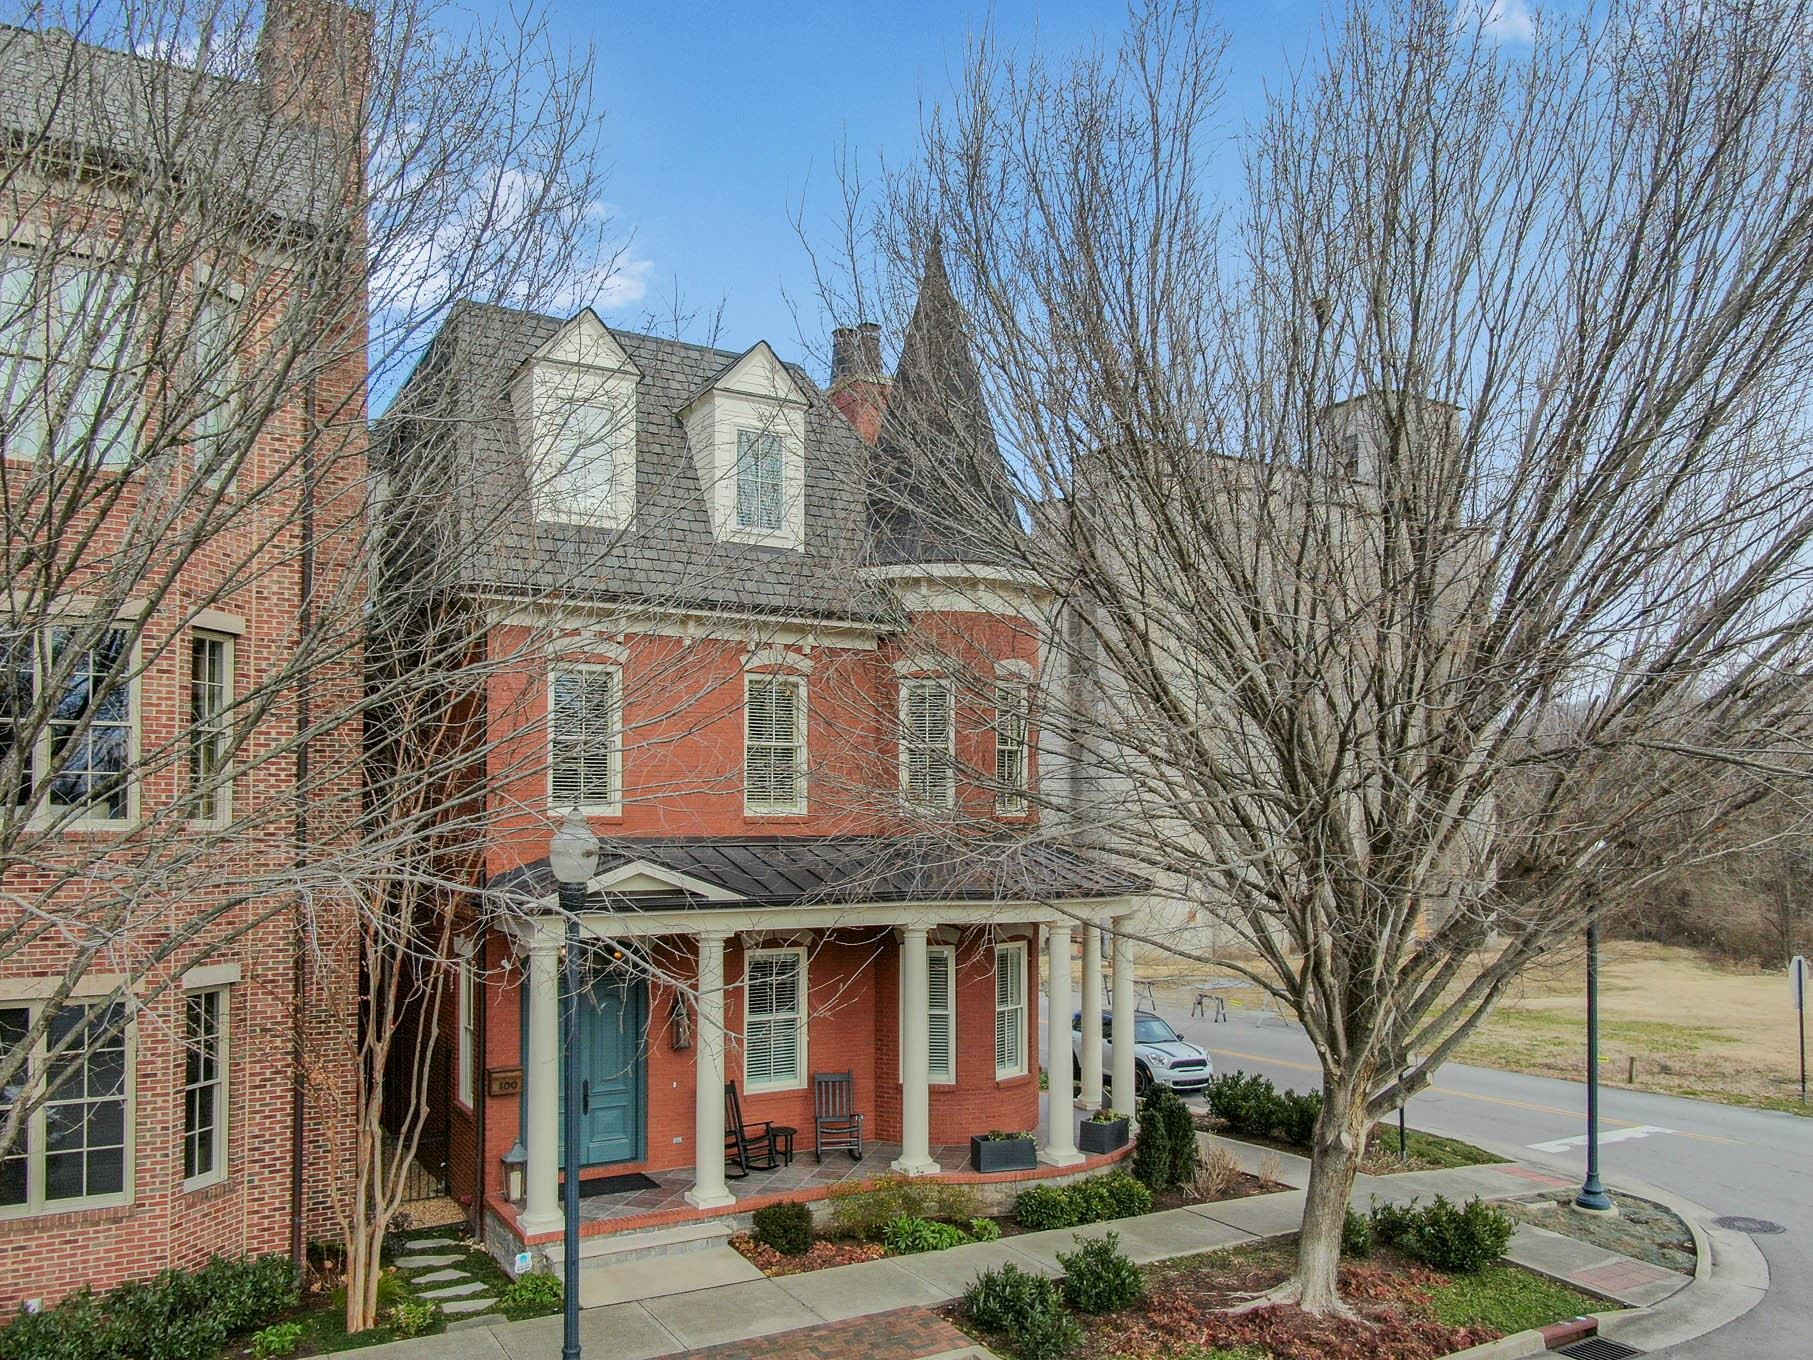 Photo of 100 CHURCH STREET, Franklin, TN 37064 (MLS # 2221145)